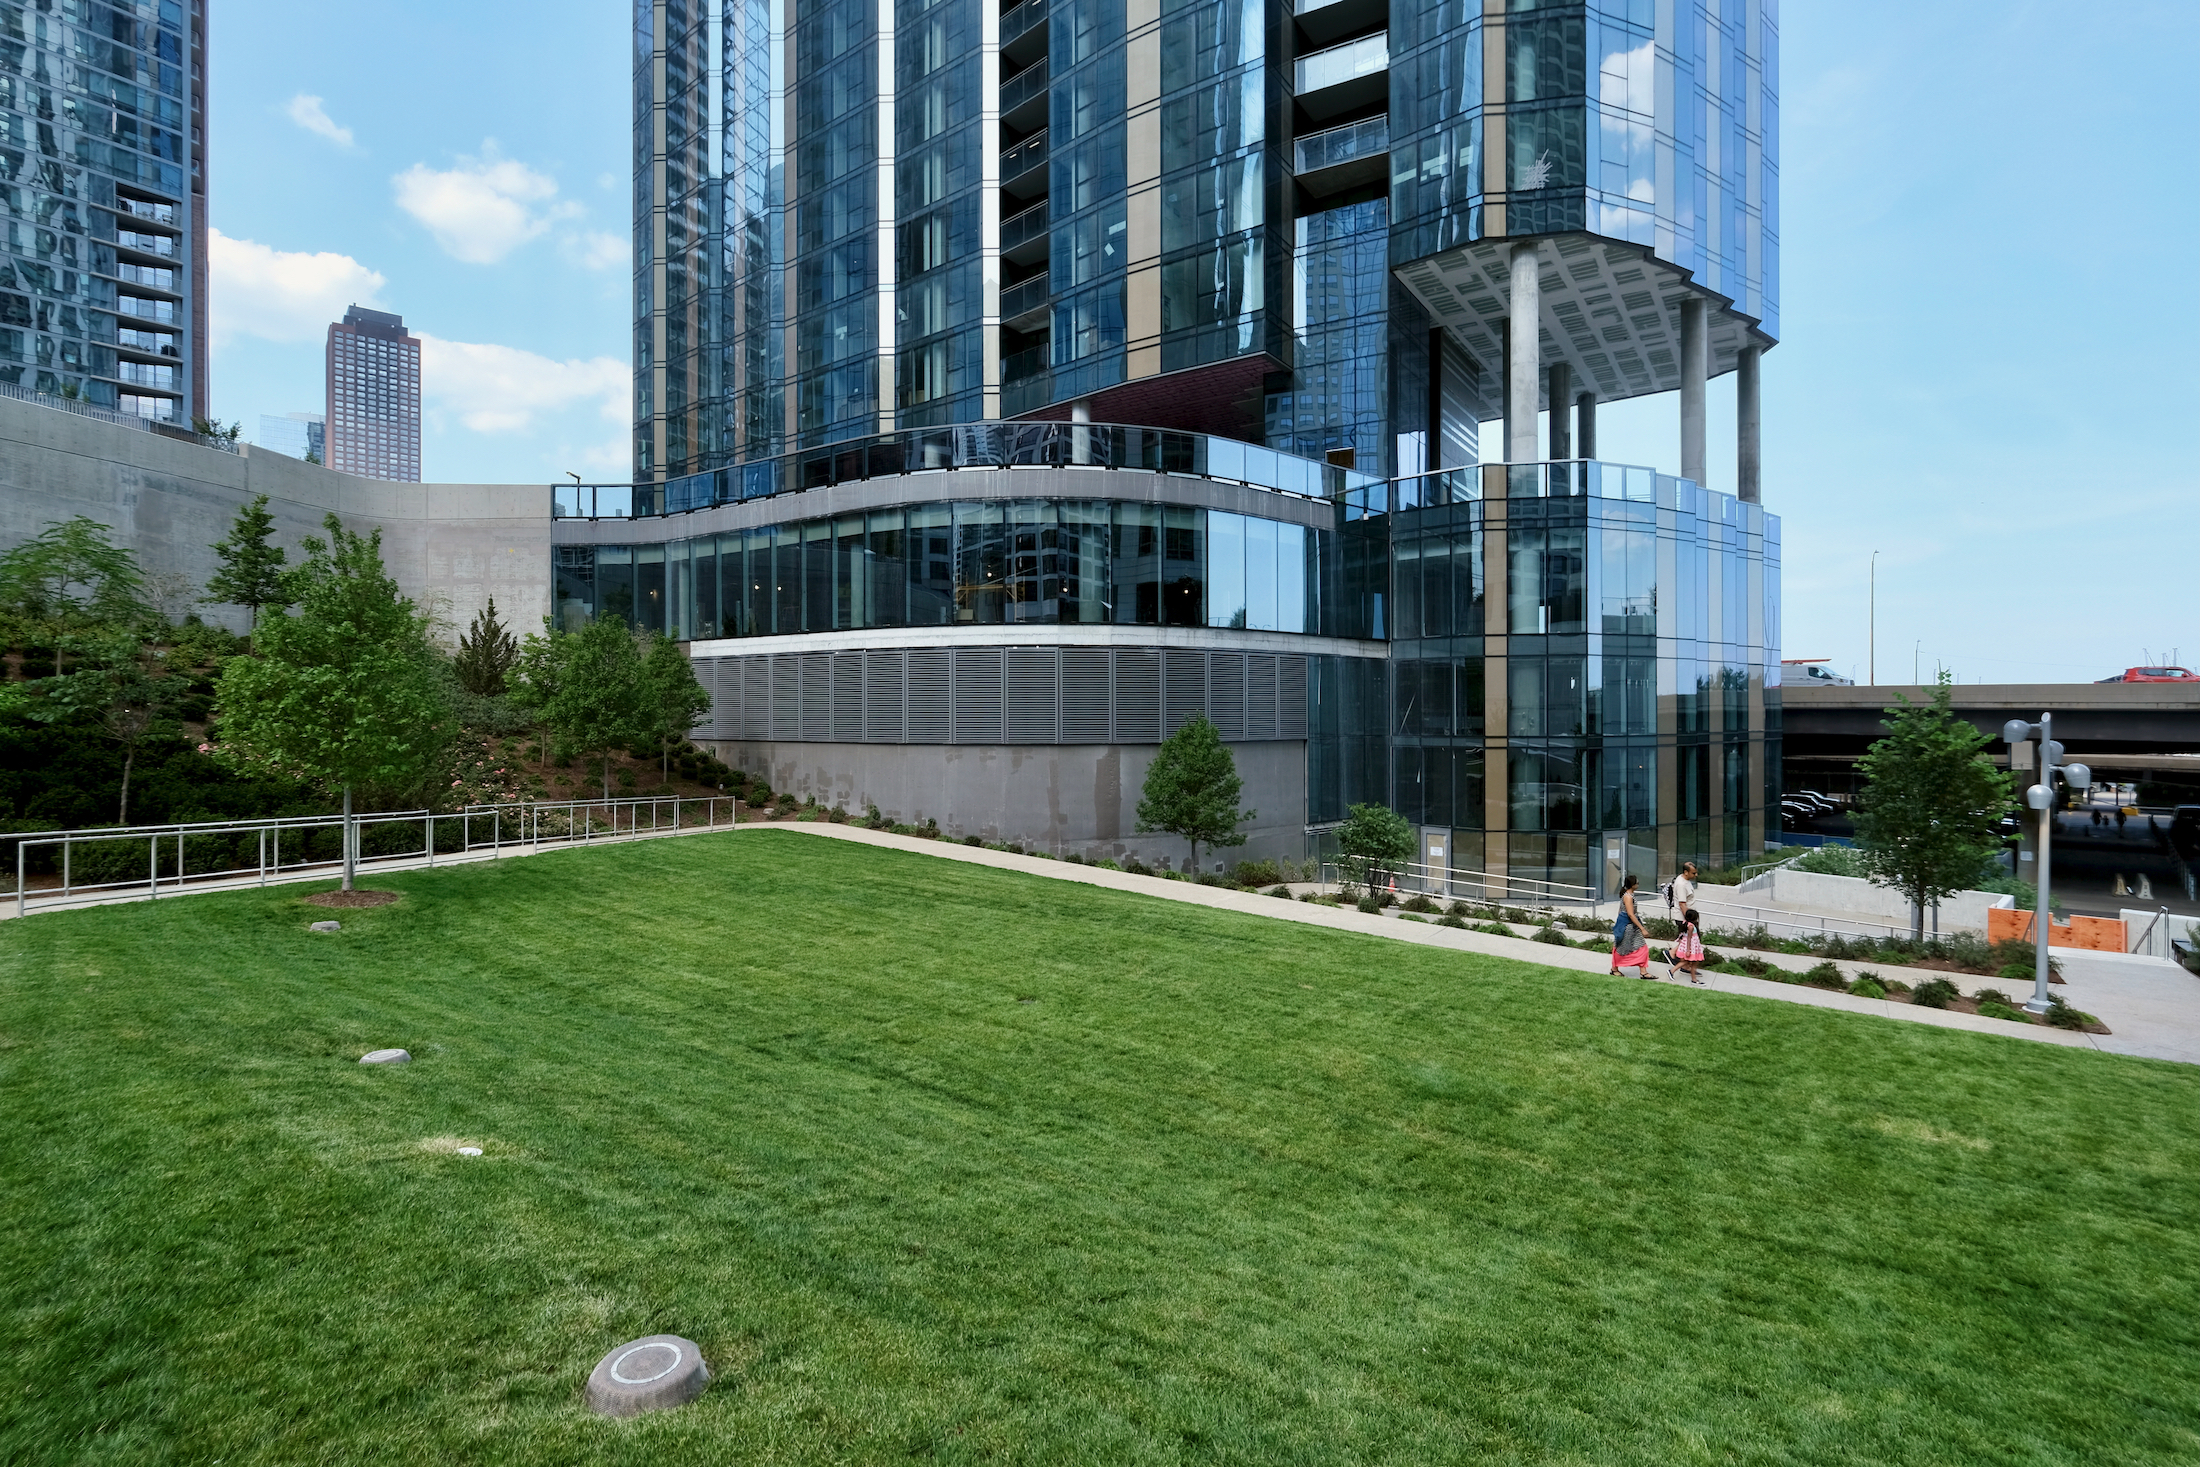 Cascade Park at the foot of Cirrus tower